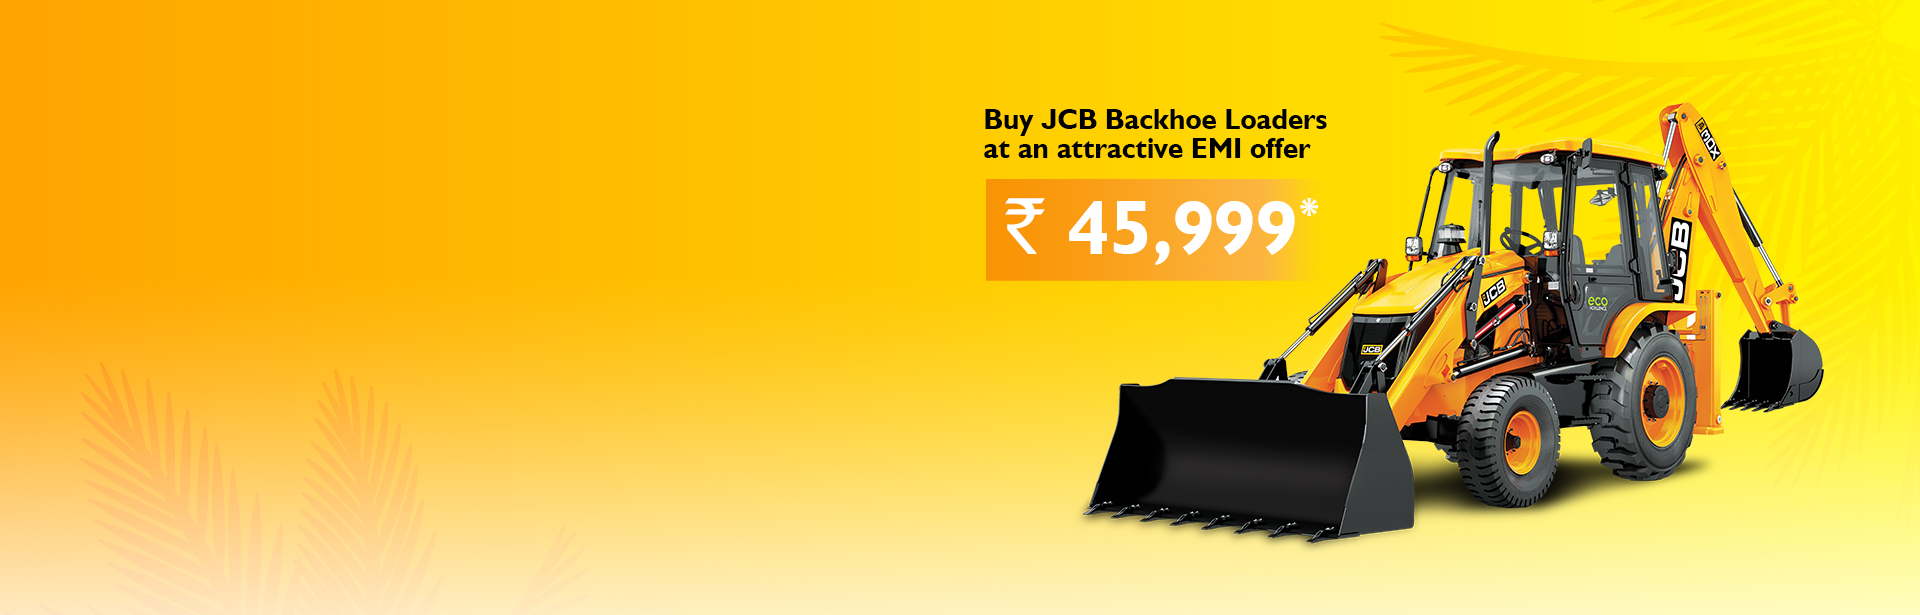 BHL Mega Summer Offer Jabalpur Frontier Commercial JCB